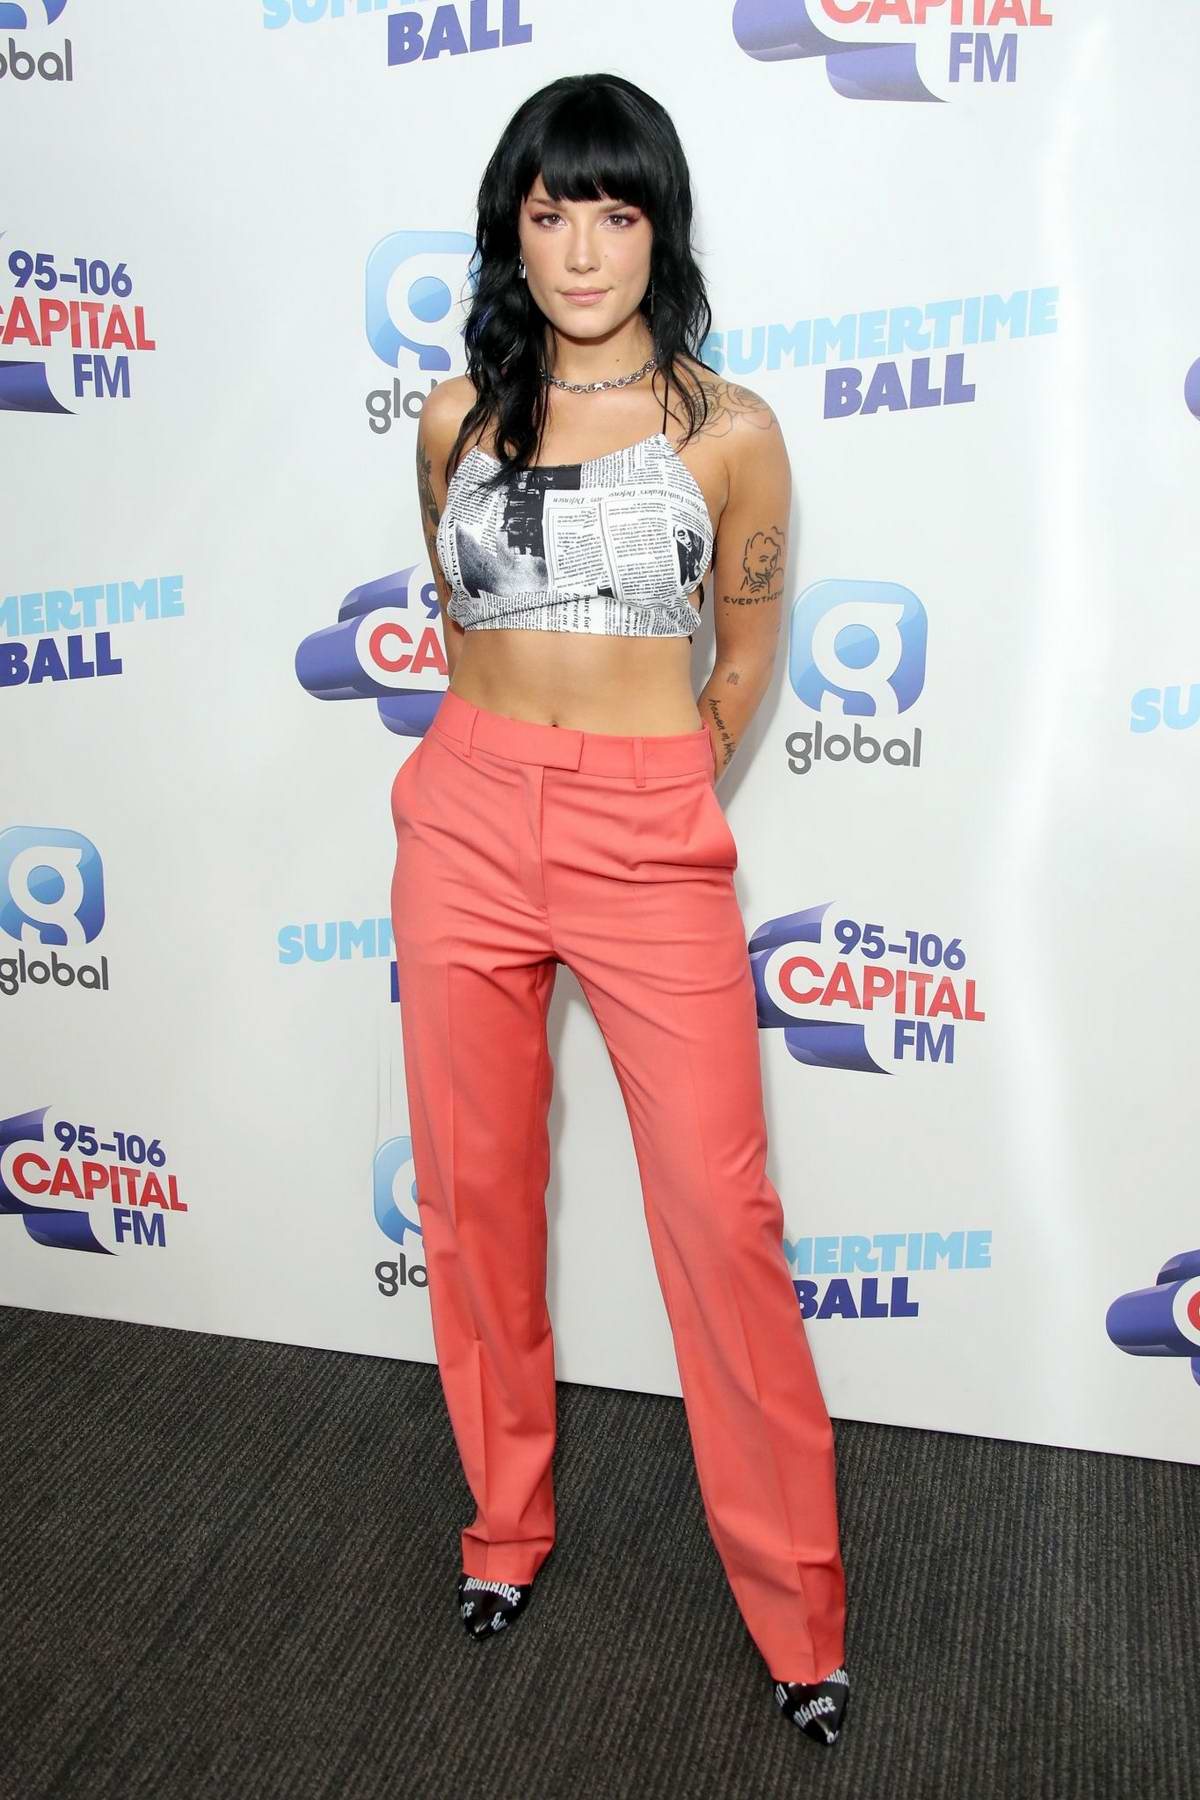 Halsey attends the 2019 Capital FM Summertime Ball at Wembley Stadium in London, UK